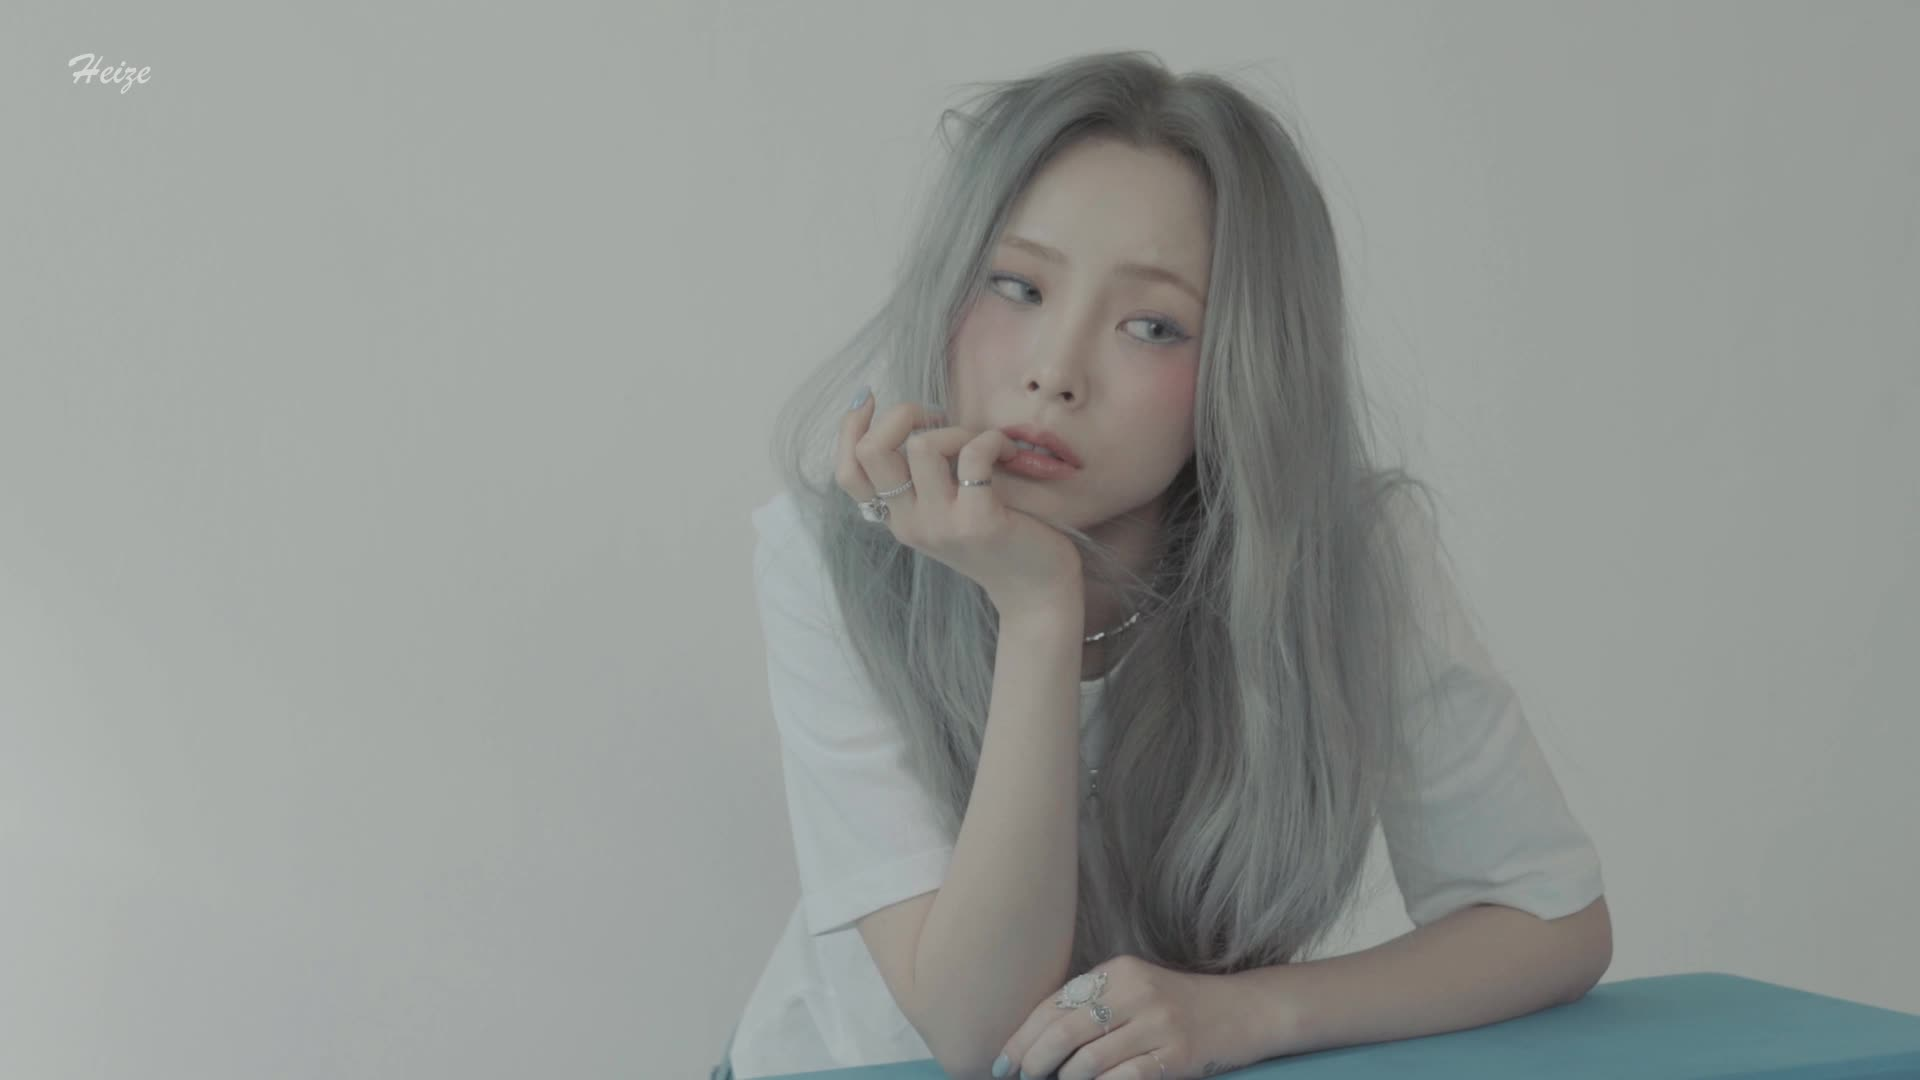 [The Pieces of Heize] Teaser #1